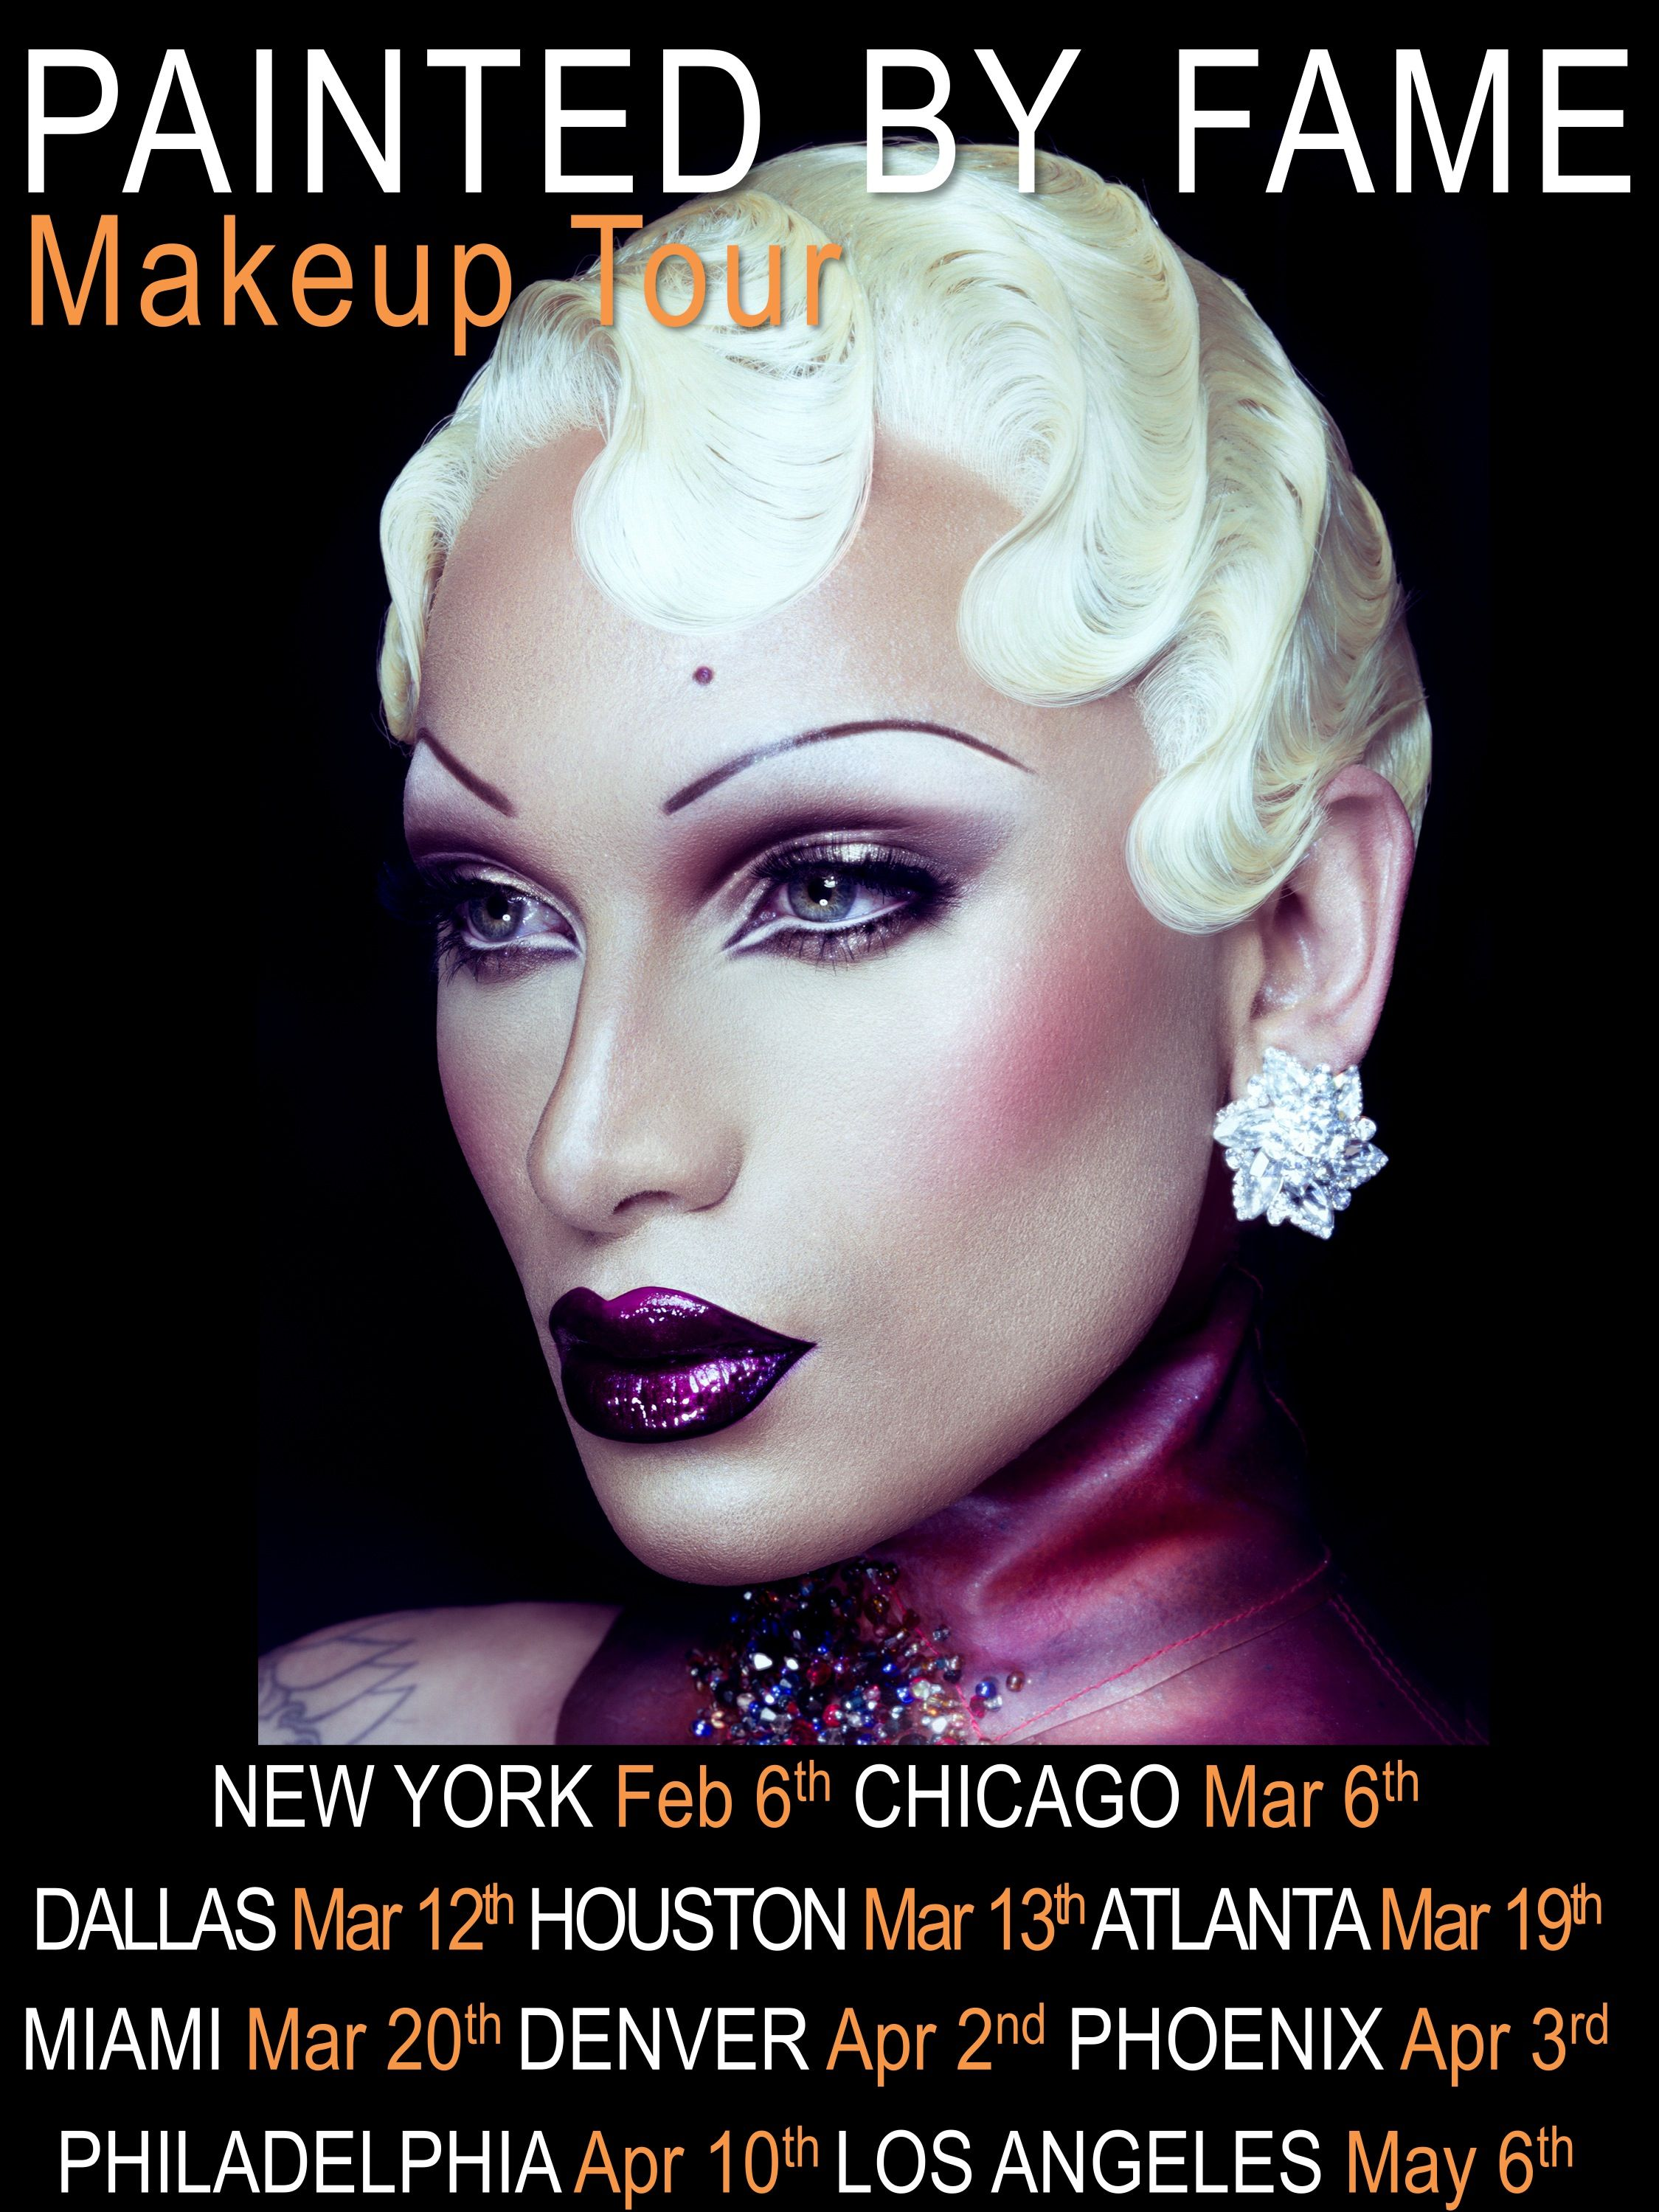 Miss Fame Painted By Fame Makeup Classes Http Missfamenyc Bigcartel Com My Books Best Makeup Products Make You Up